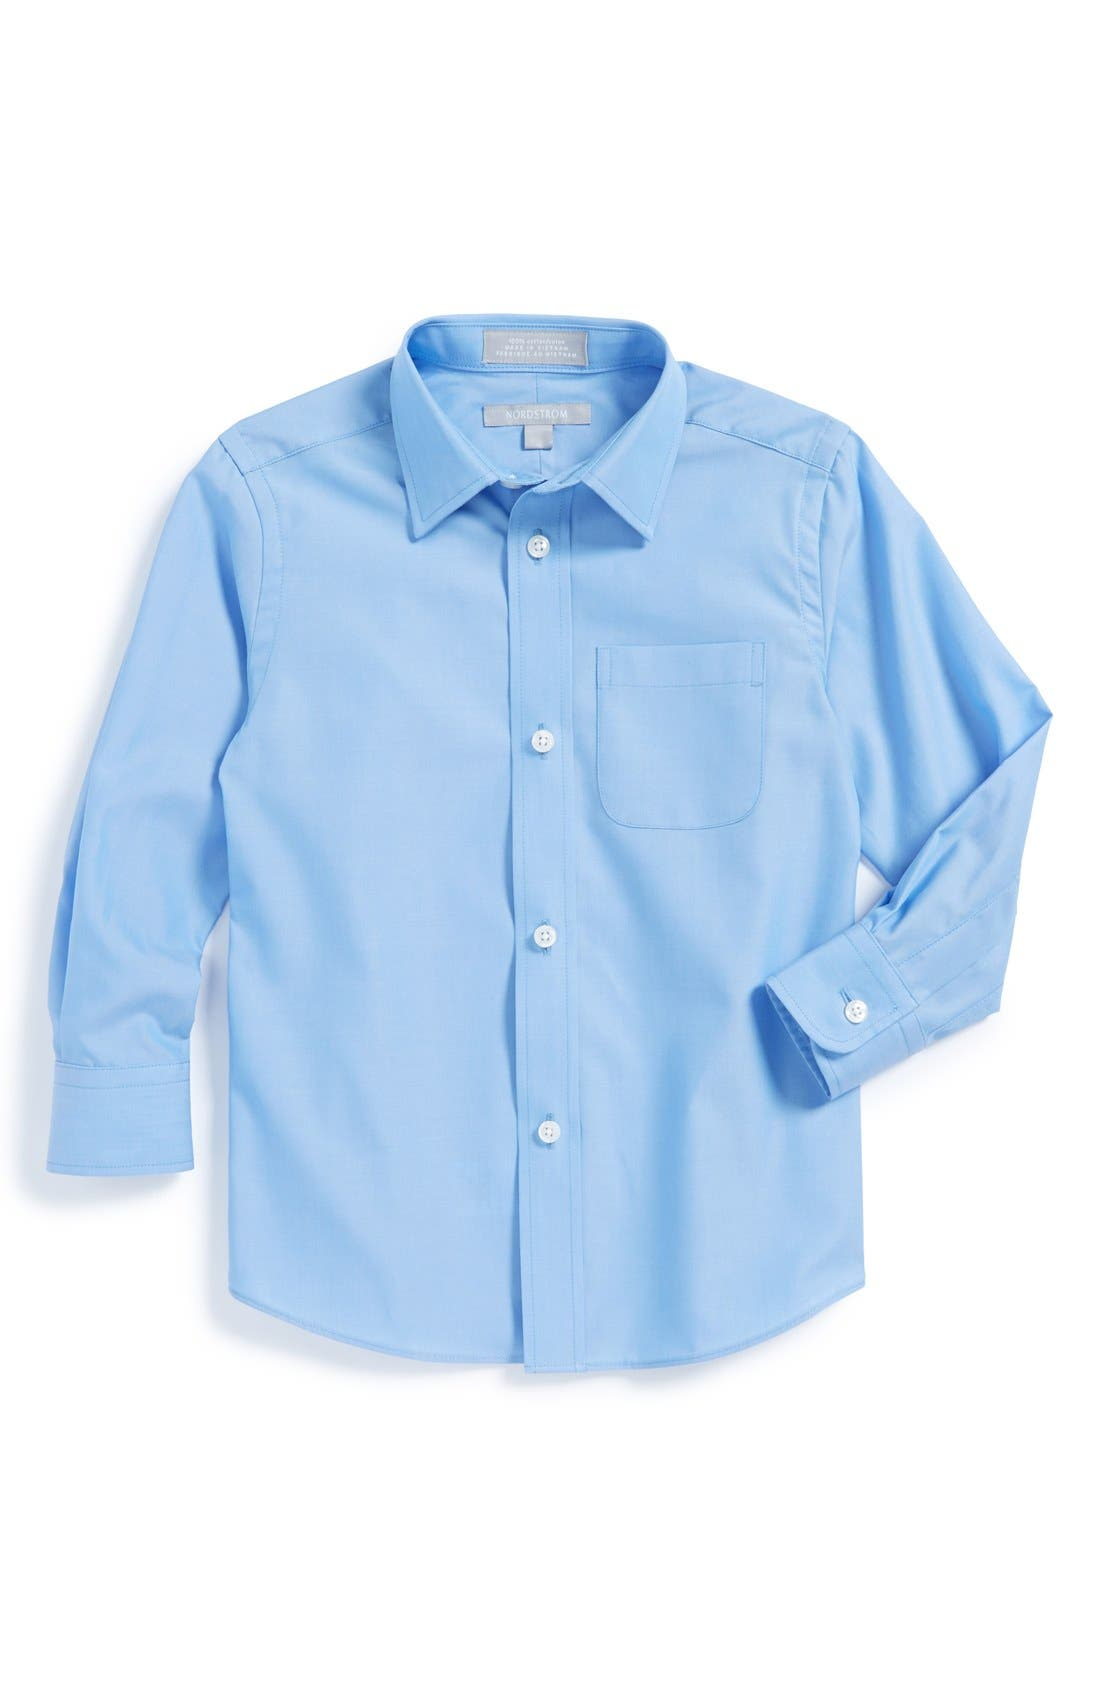 Cotton Poplin Dress Shirt,                             Main thumbnail 1, color,                             Blue Smart